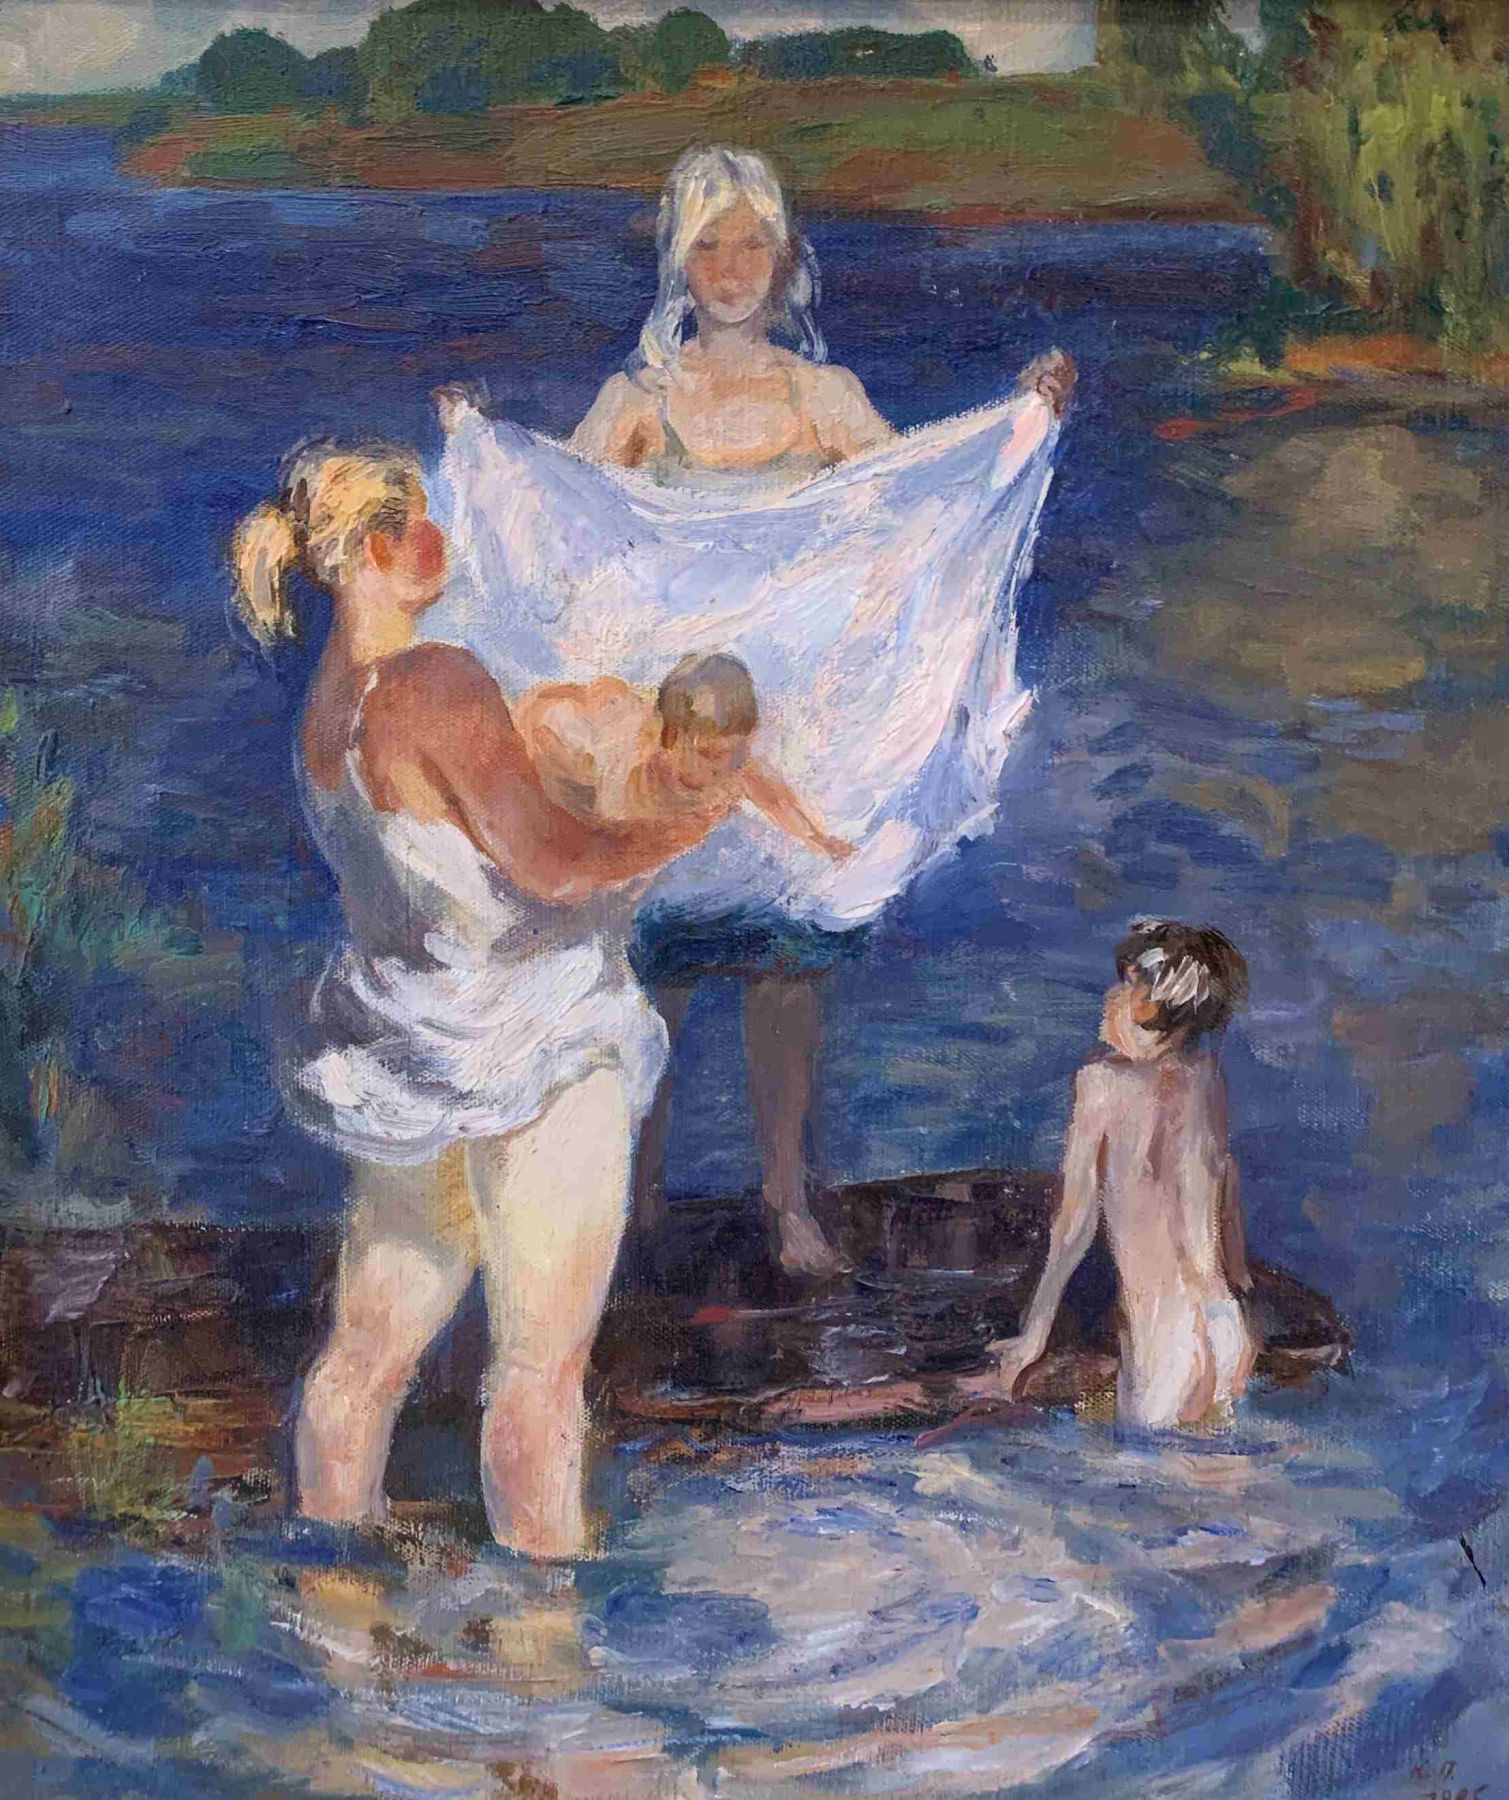 Bathing a child on a summer day.